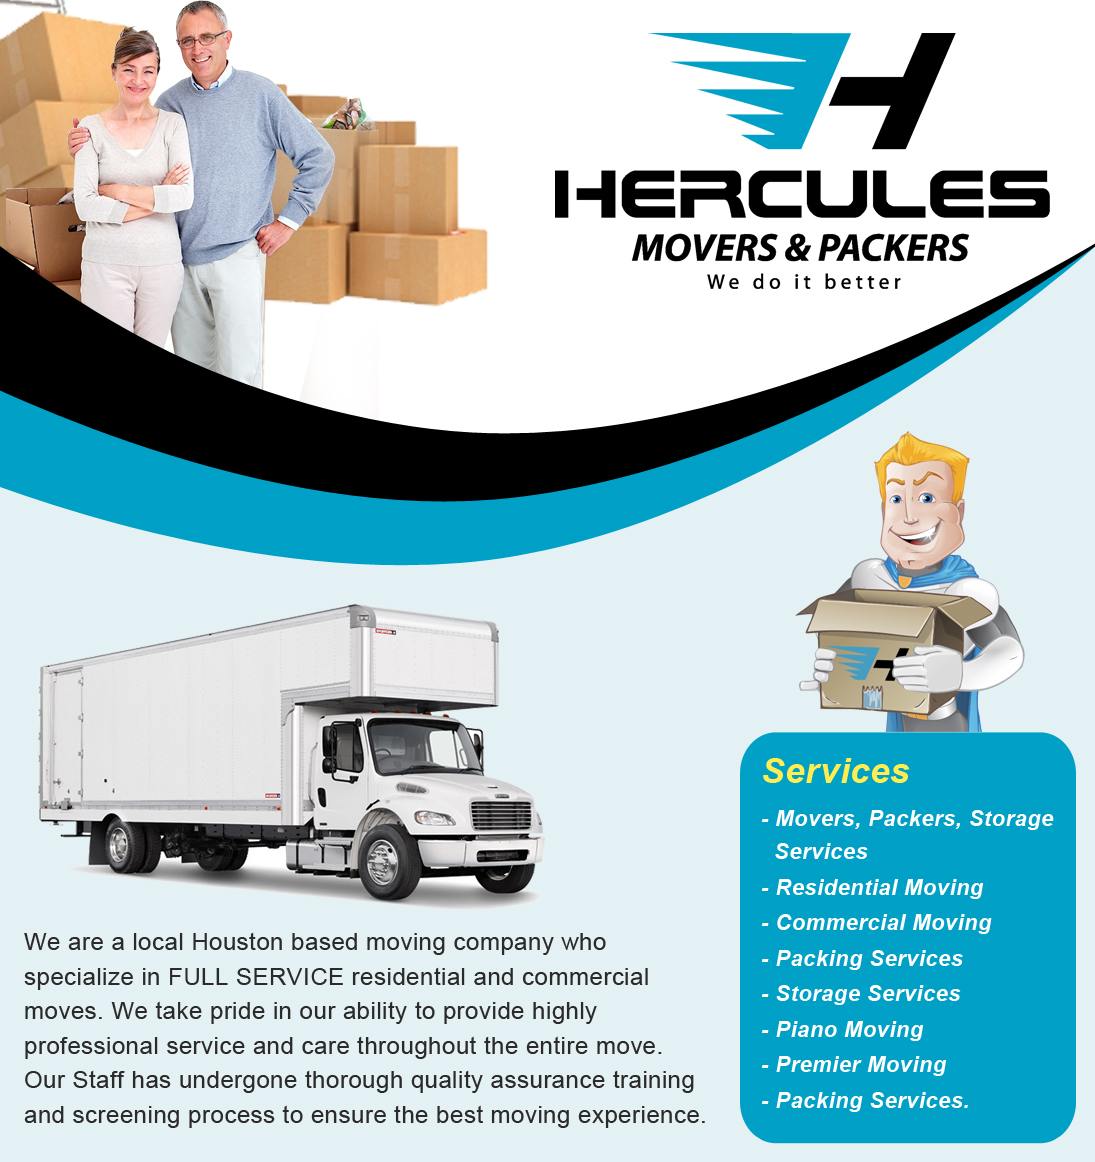 About Hercules Movers U0026 Packers